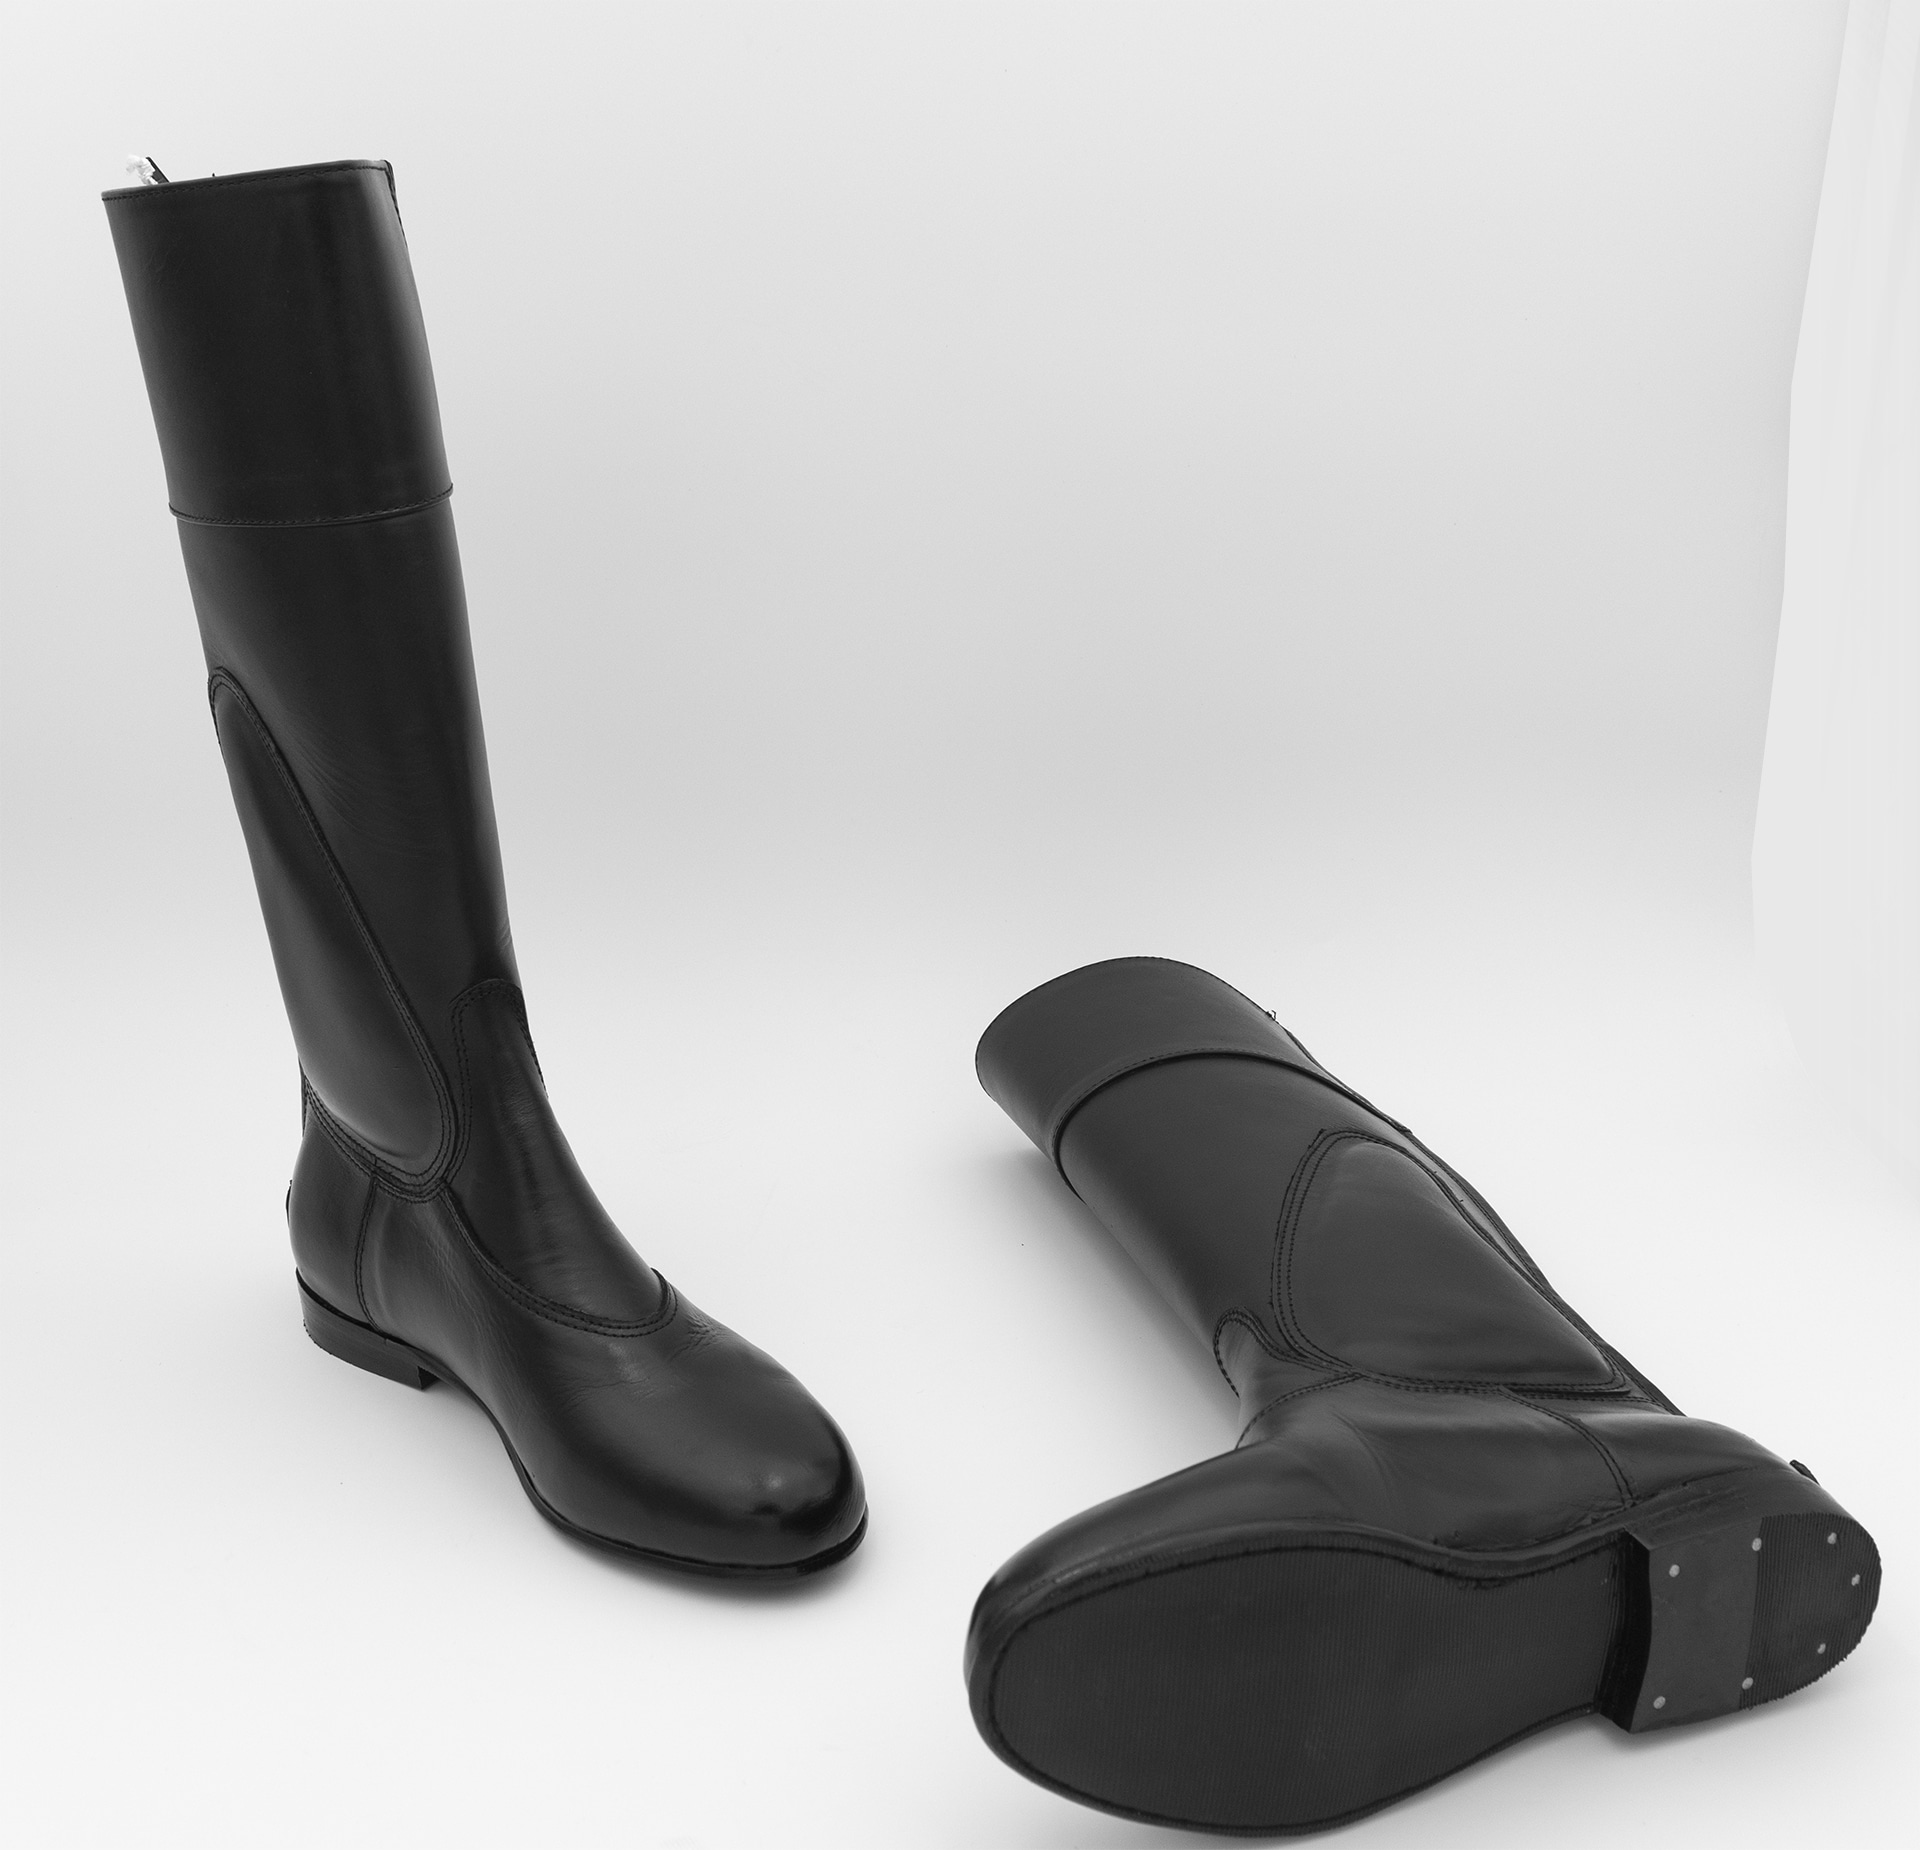 Blood Horse Riding Boots Equiwin Jockey Racing Apparel Wholesale